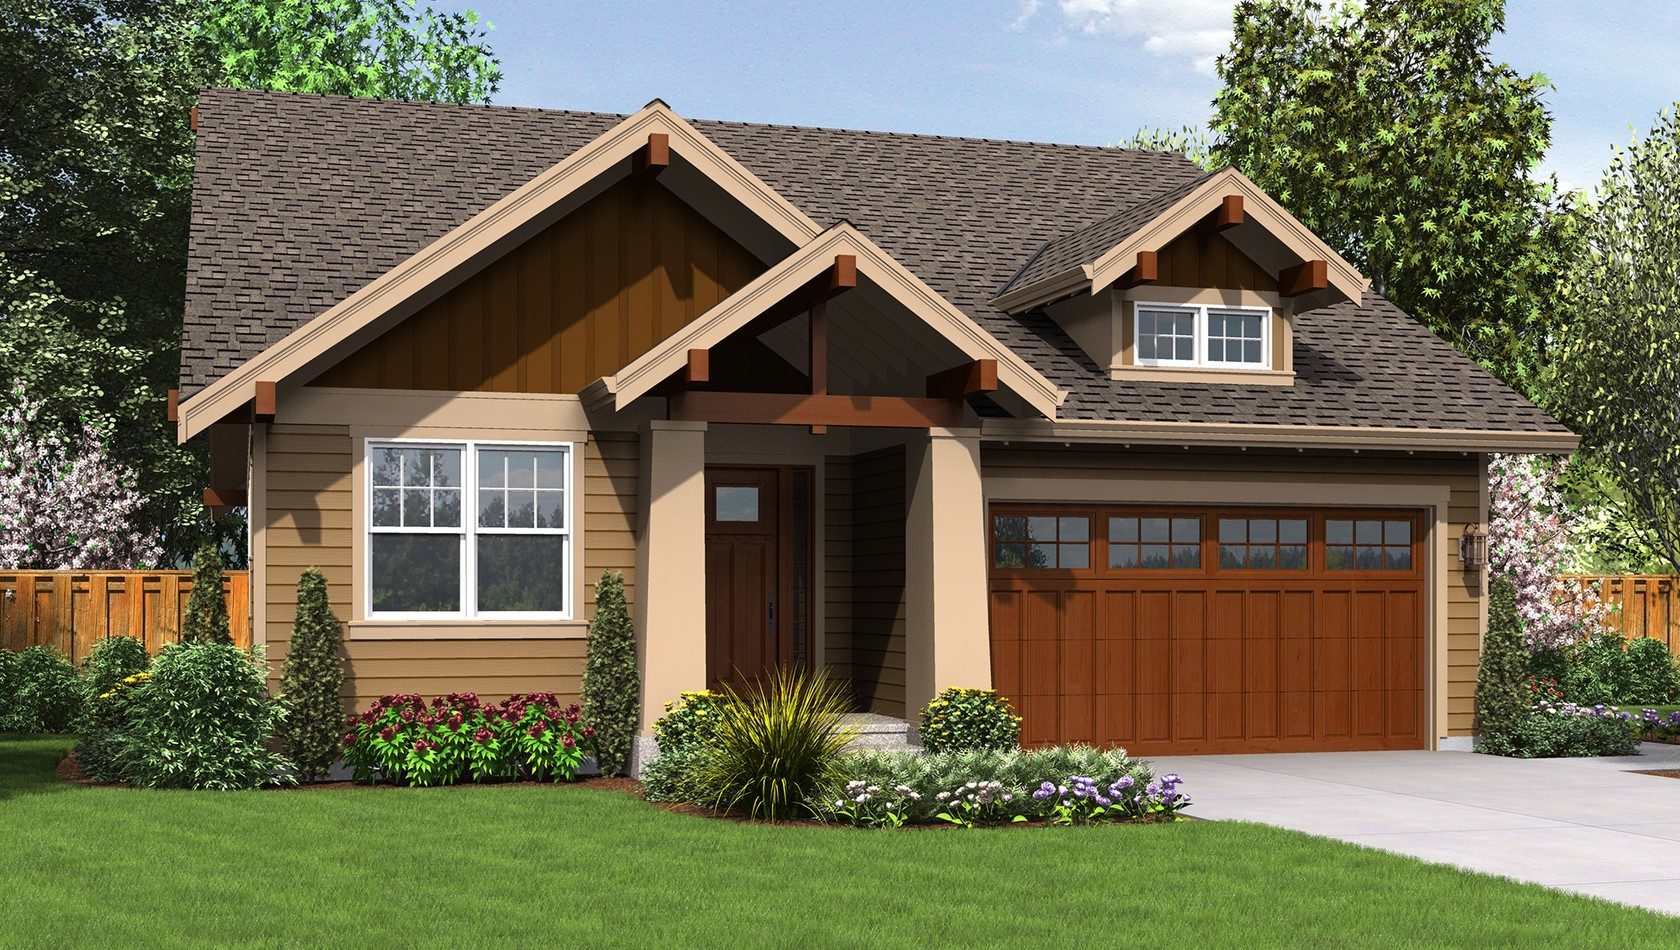 Main image for house plan B1168ES: The ESPRESSO